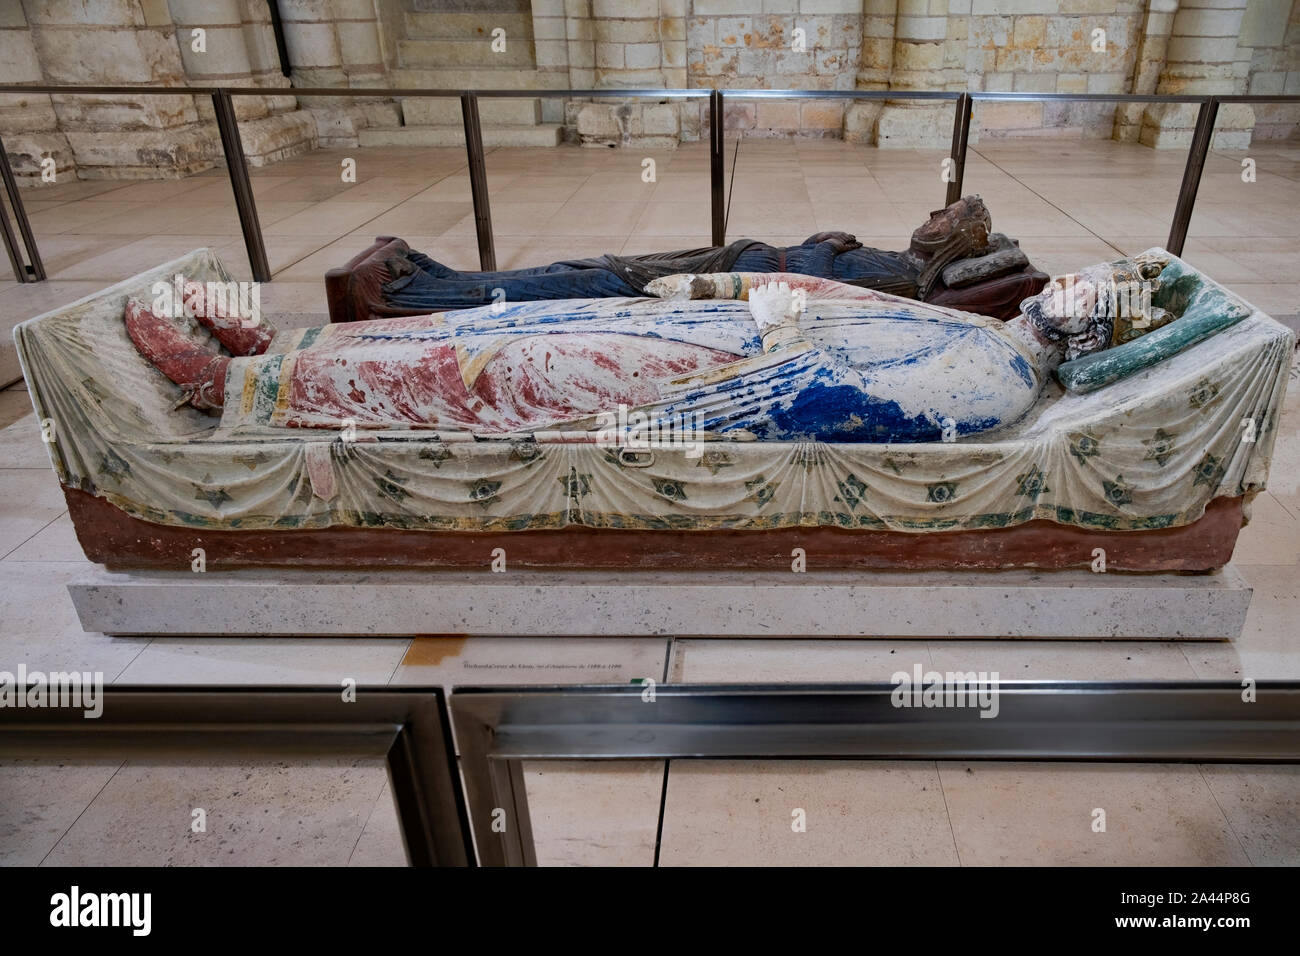 Burial effigy of King Richard the Lionheart, Coeur de Lion,  at Abbey of Fontevraud, Loire, France. He was buried at the abbey with other Plantagenet Stock Photo